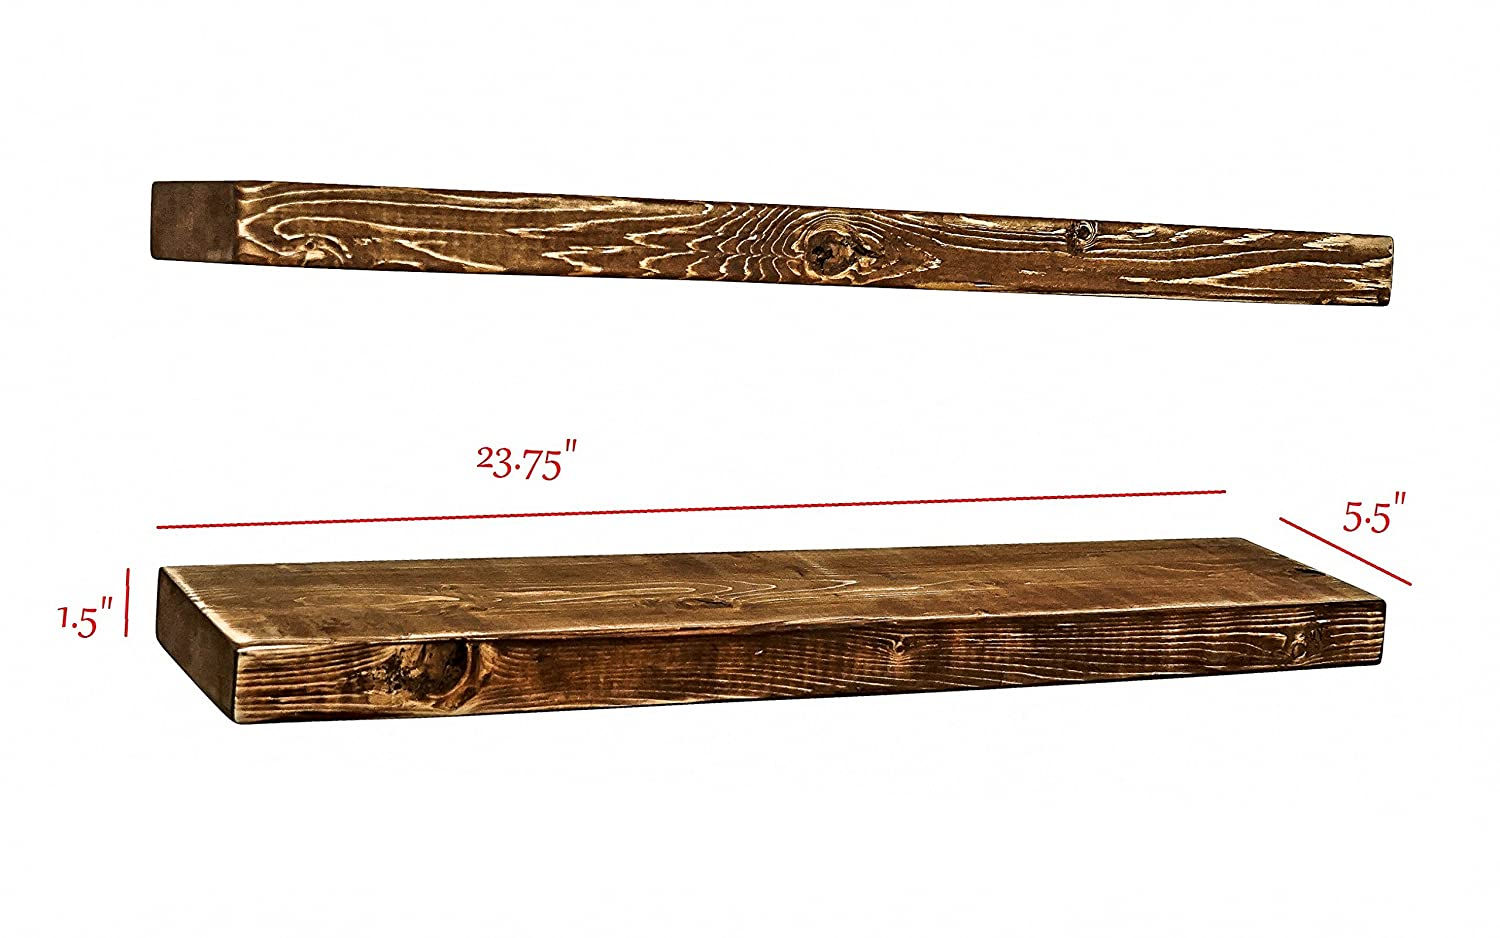 "(2pc) FARMHOUSE STYLE RUSTIC 100% NATURAL SOLID PINE WOOD FLOATING SHELVES BRACKETS MOUNTING HARDWARE CLEAR COAT (24""X5.5""X1.5"") wall hanging decor picture shelf (American Walnut) Thaostudios.com"